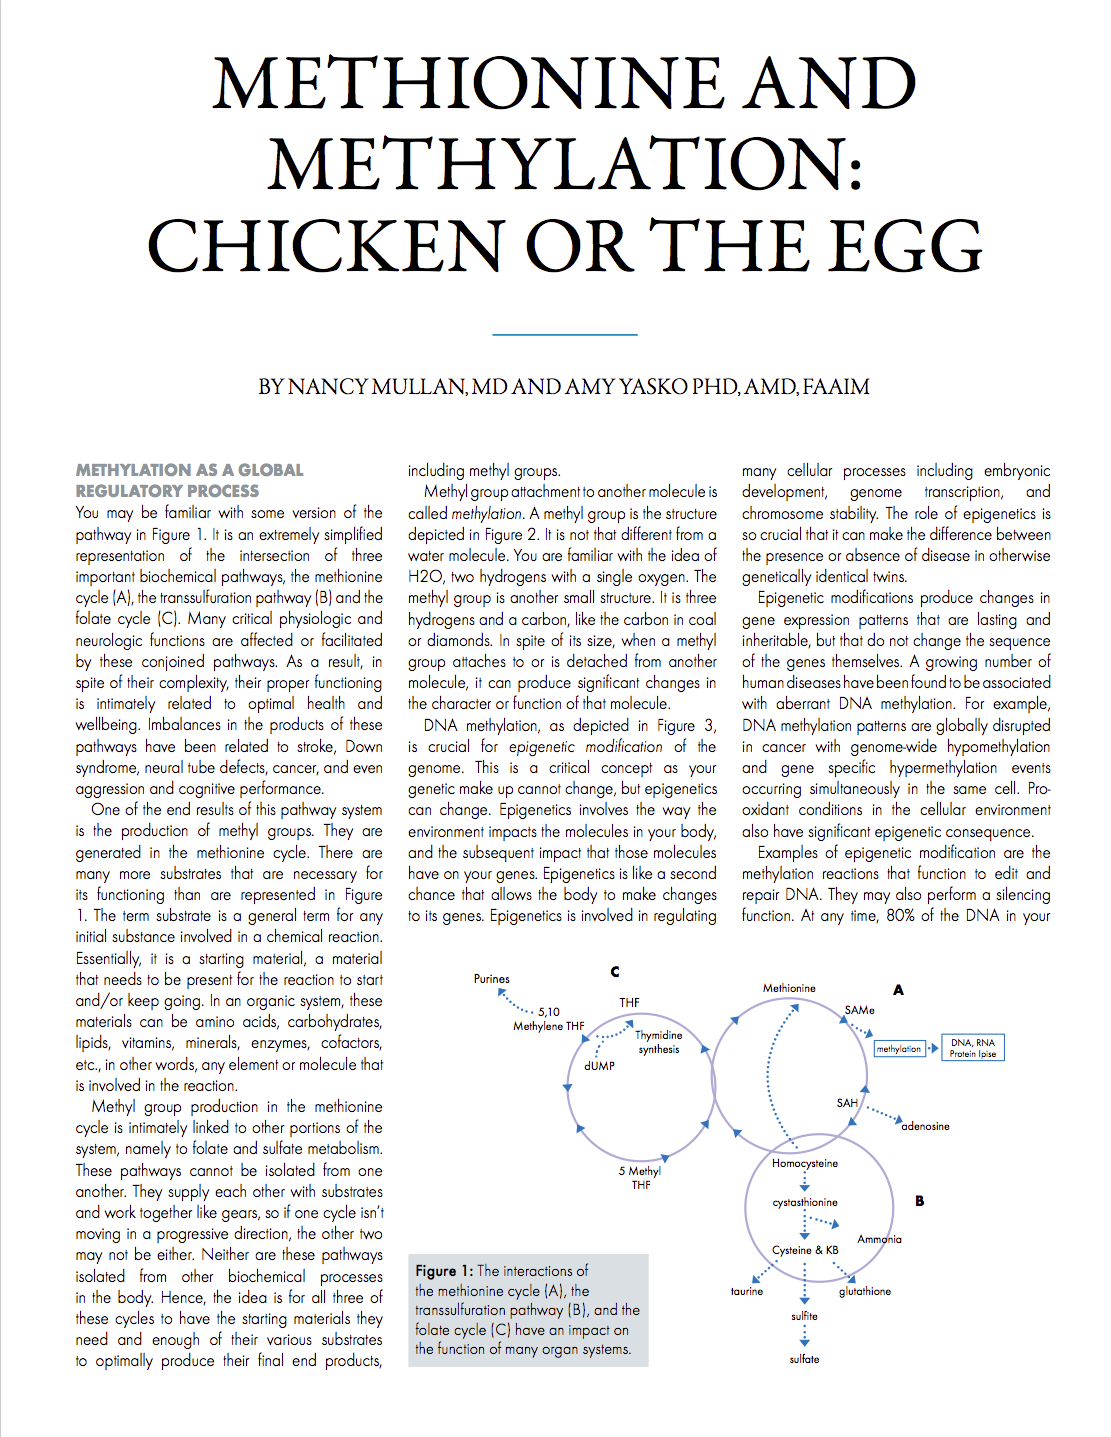 Methionine and Methylation: Chicken or the Egg